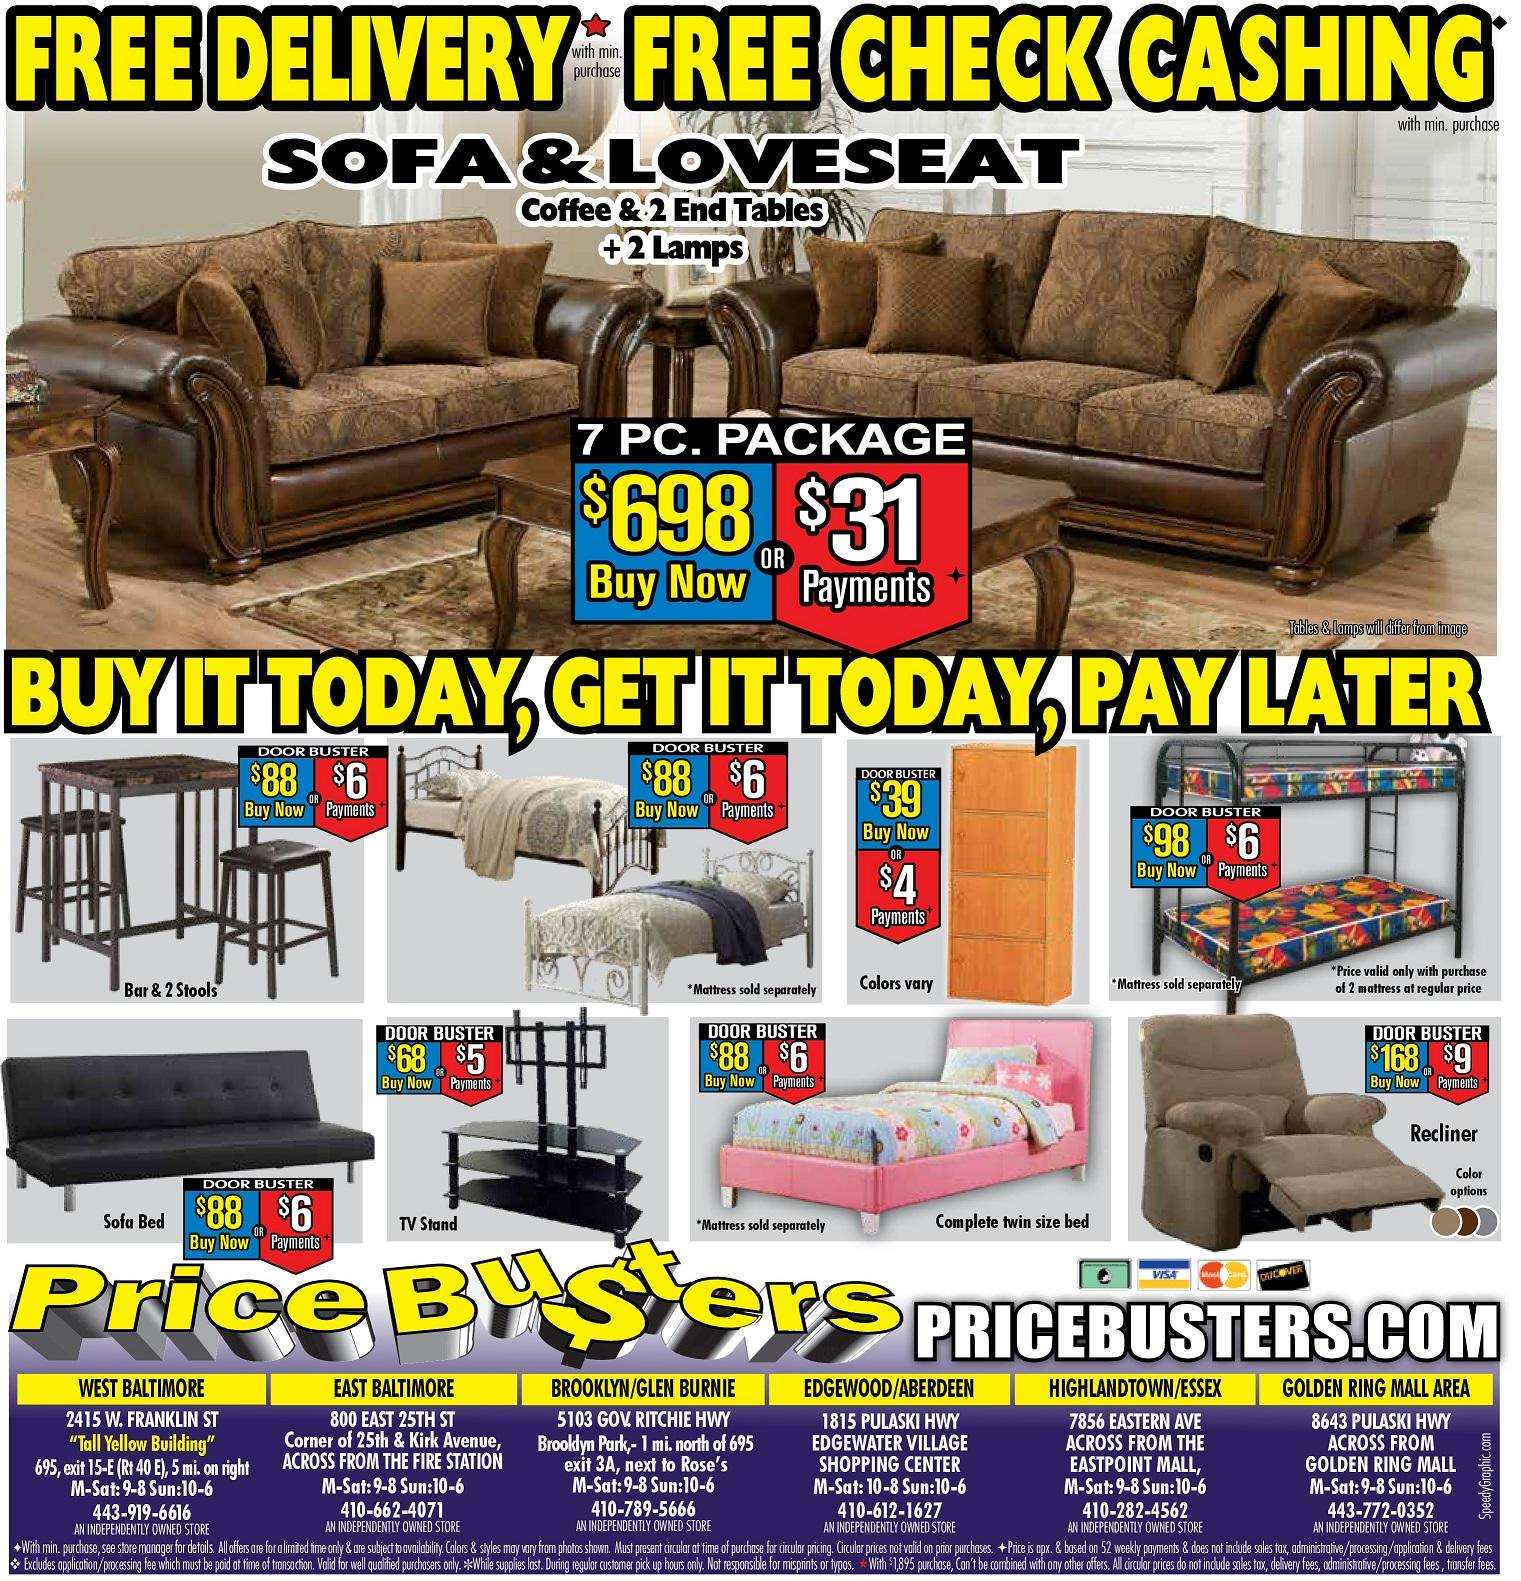 Price Busters Discount Furniture At 2101 University Boulevard East Hyattsville Md On Fave